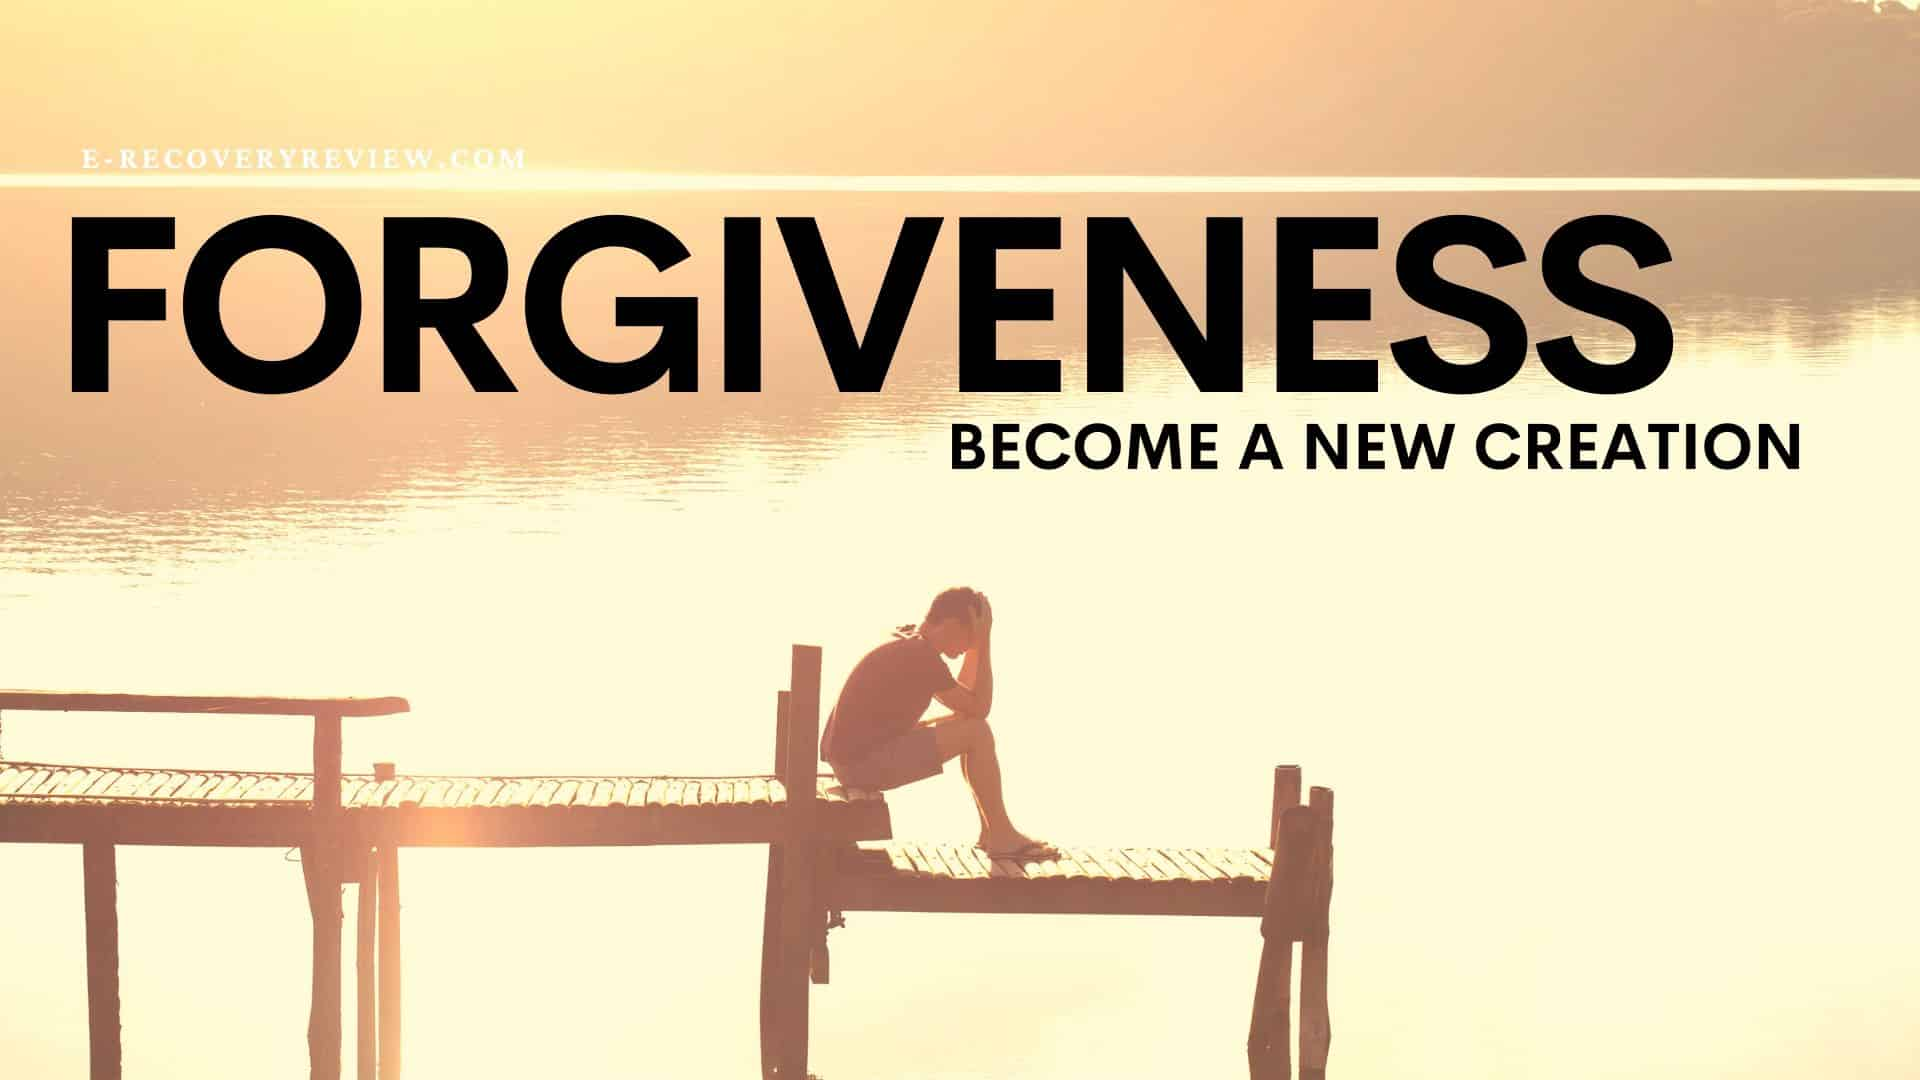 what is forgiveness What Is Forgiveness And Why Is It Important